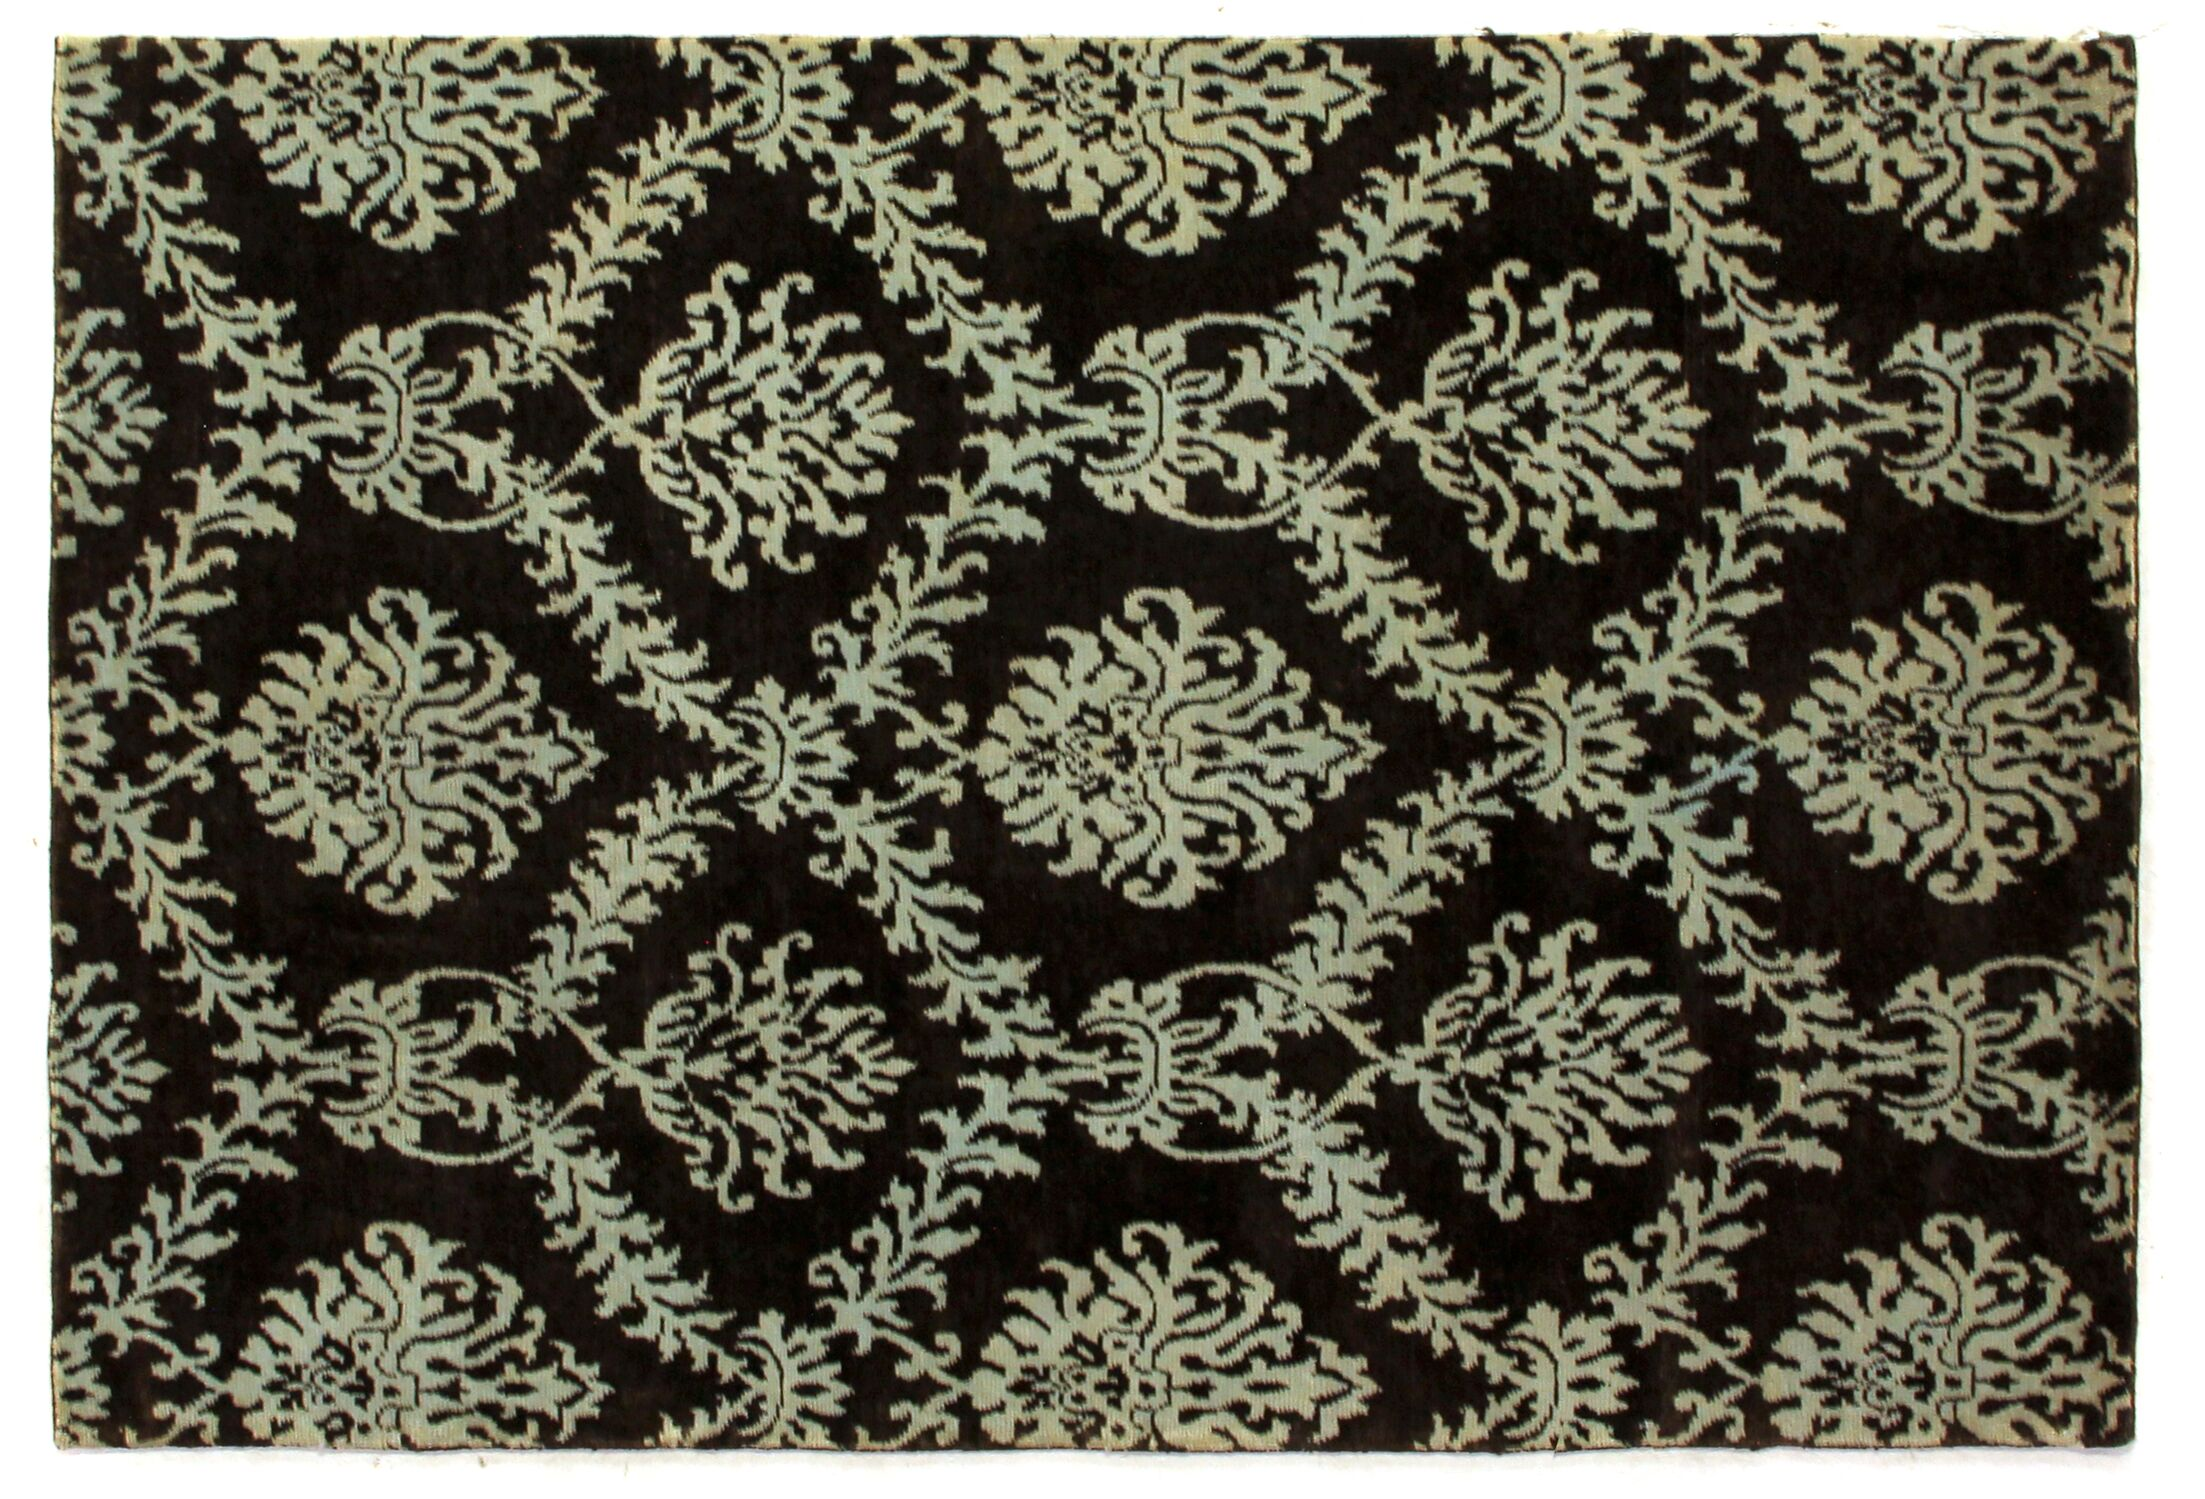 Metropolitan Hand Knotted Wool Brown/Light Blue Area Rug Rug Size: Rectangle 6' x 9'